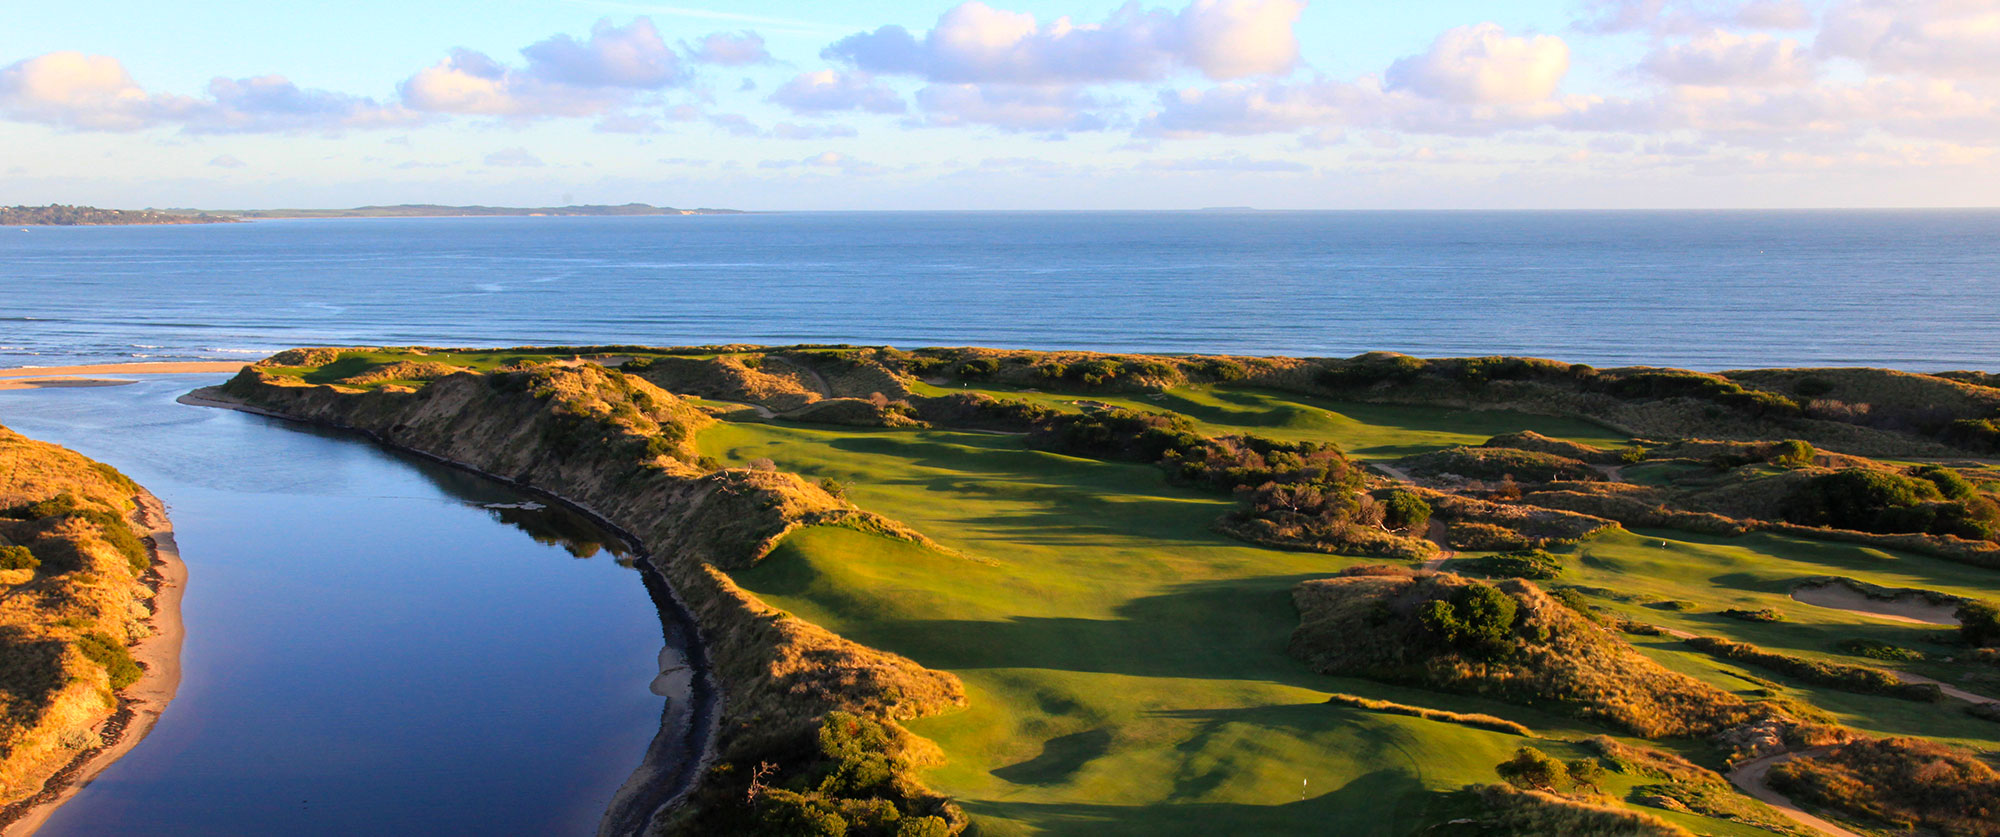 Barnbougle Dunes - Lost Farm - Travel Packages - Golf Australia - Australia Expert - Australia Golf Vacations